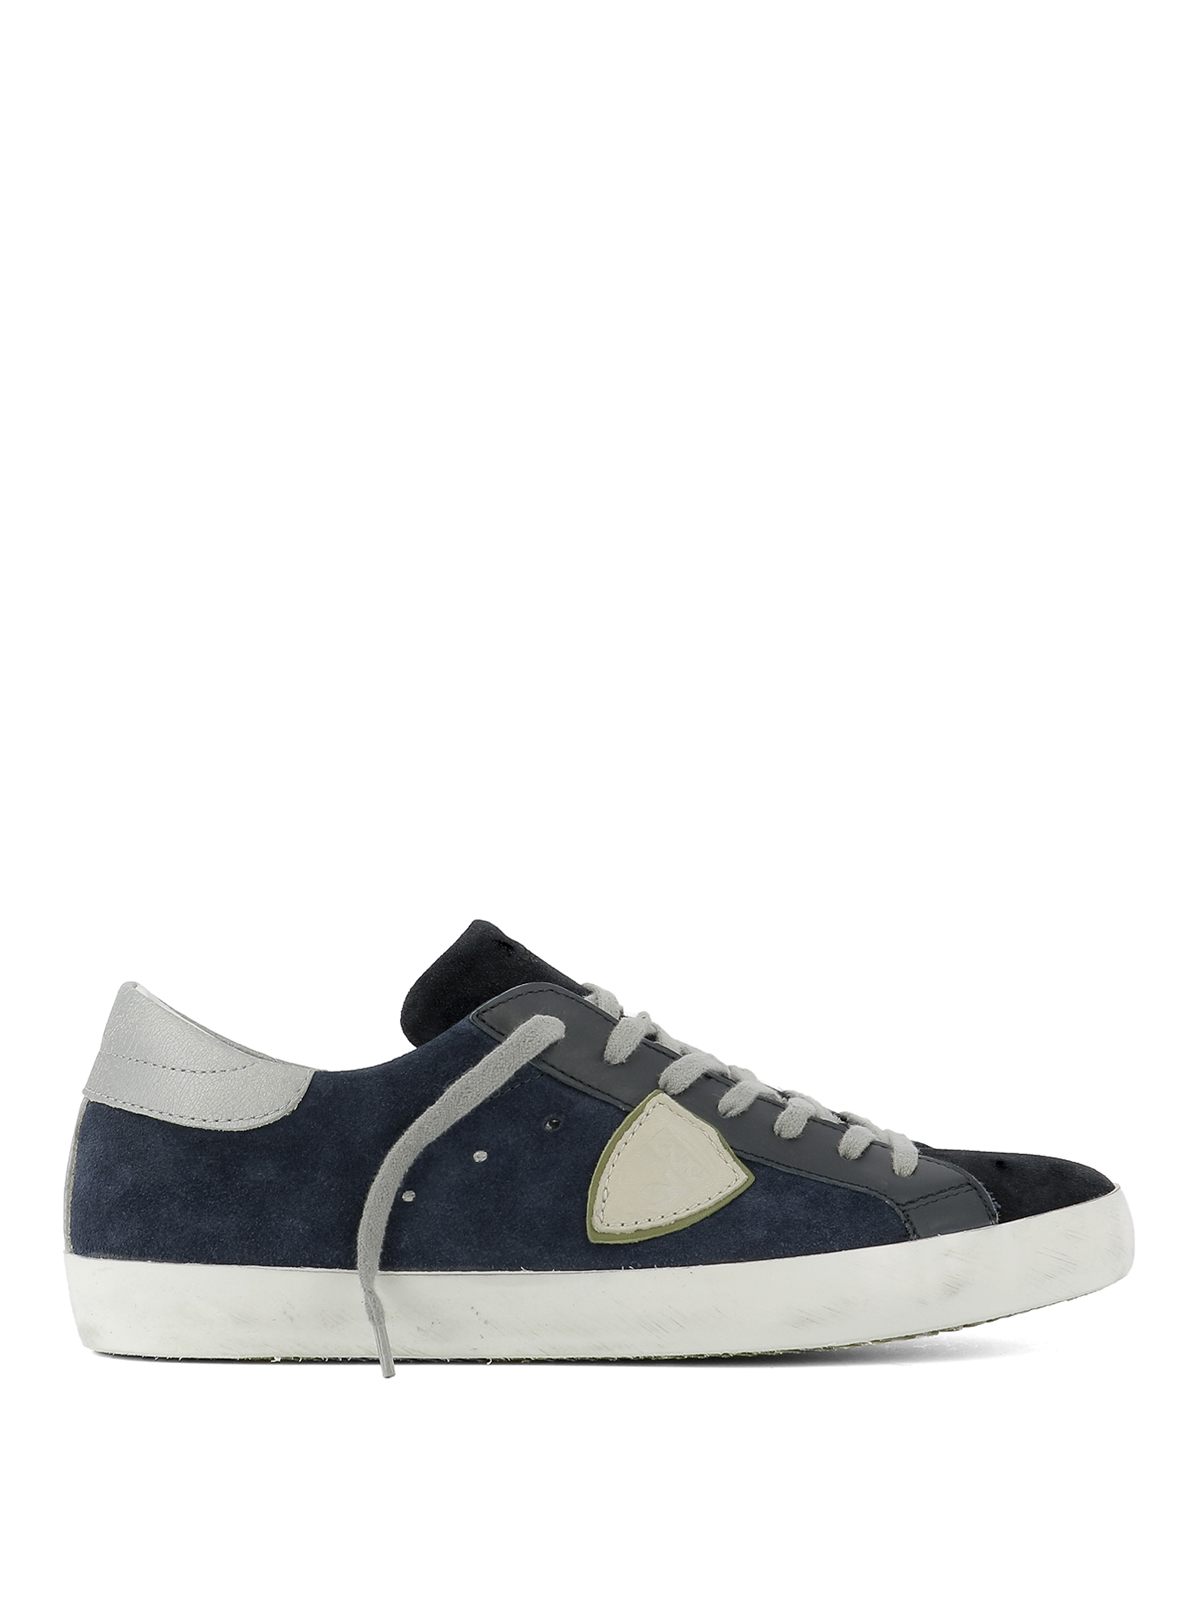 suede sneakers by philippe model trainers ikrix. Black Bedroom Furniture Sets. Home Design Ideas